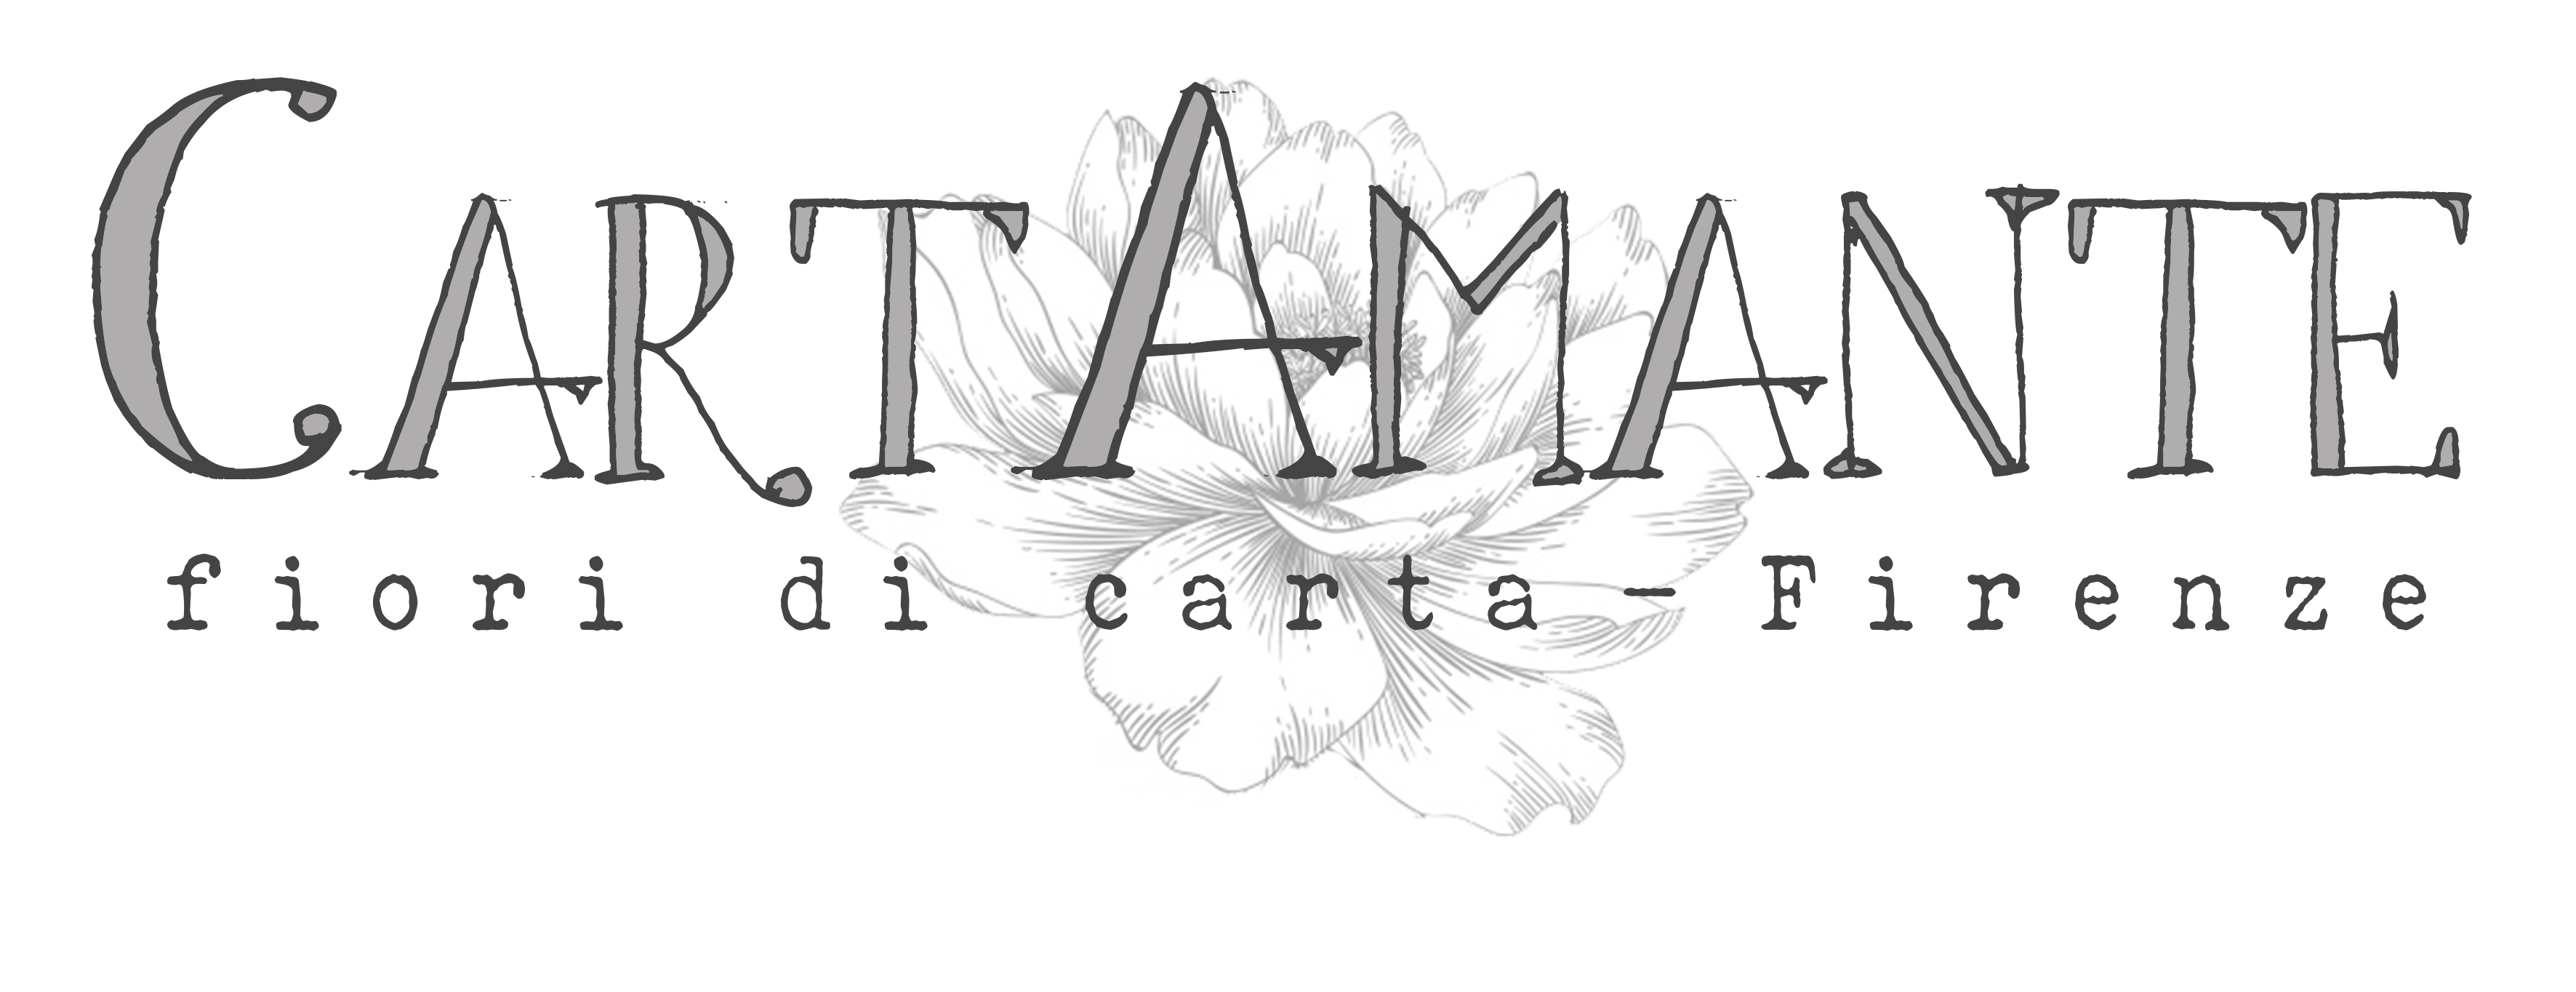 CartAmante Logo